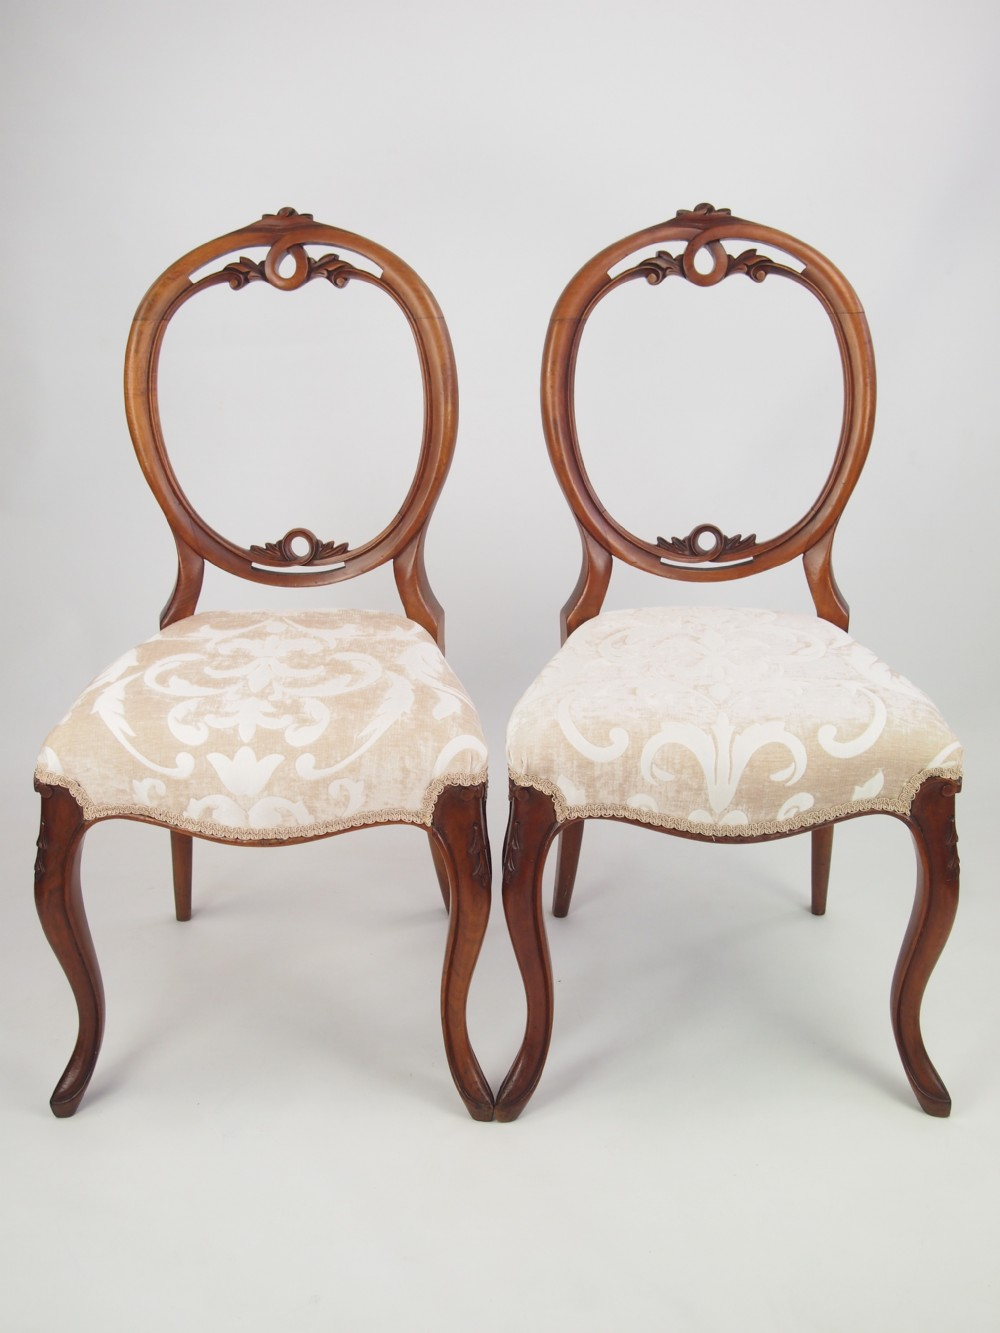 Attractive Pair Antique Victorian Walnut Balloon Back Chairs   Pair Antique Victorian  Walnut Balloon Back Chairs 266463